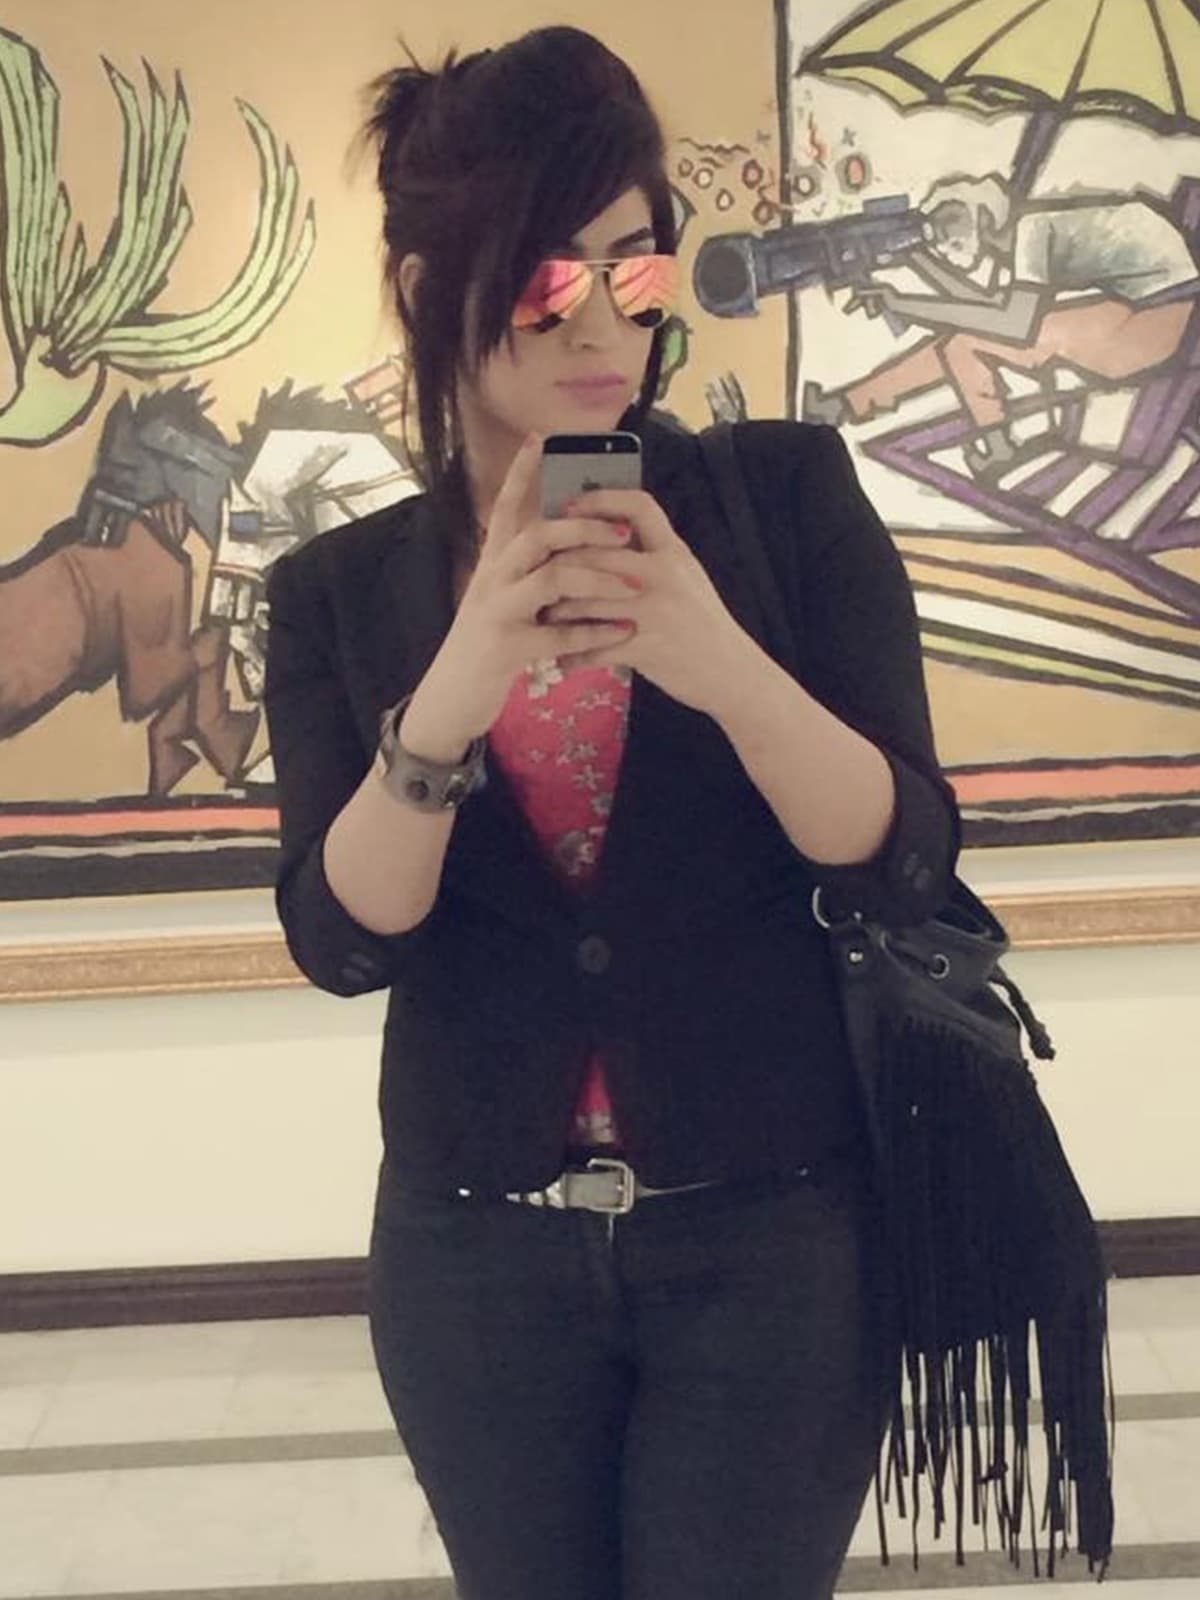 A selfie from Qandeel Baloch's Facebook page